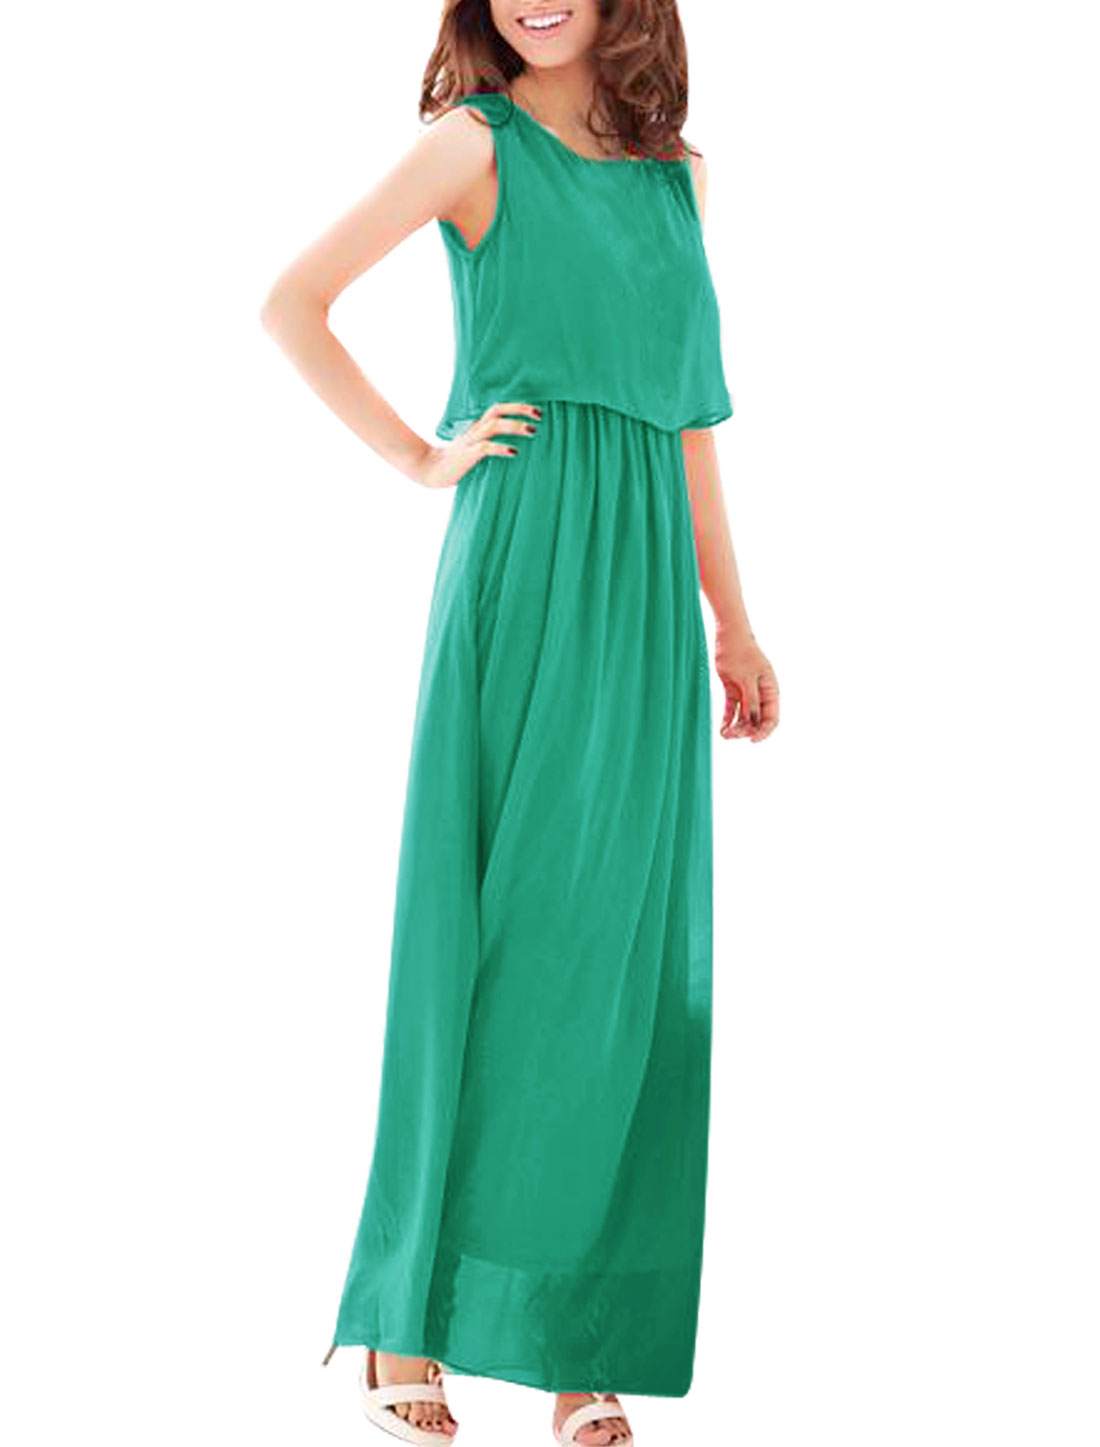 Ladies Chic Scoop Neck Sleeveless Sea Green Full Length Dress XS